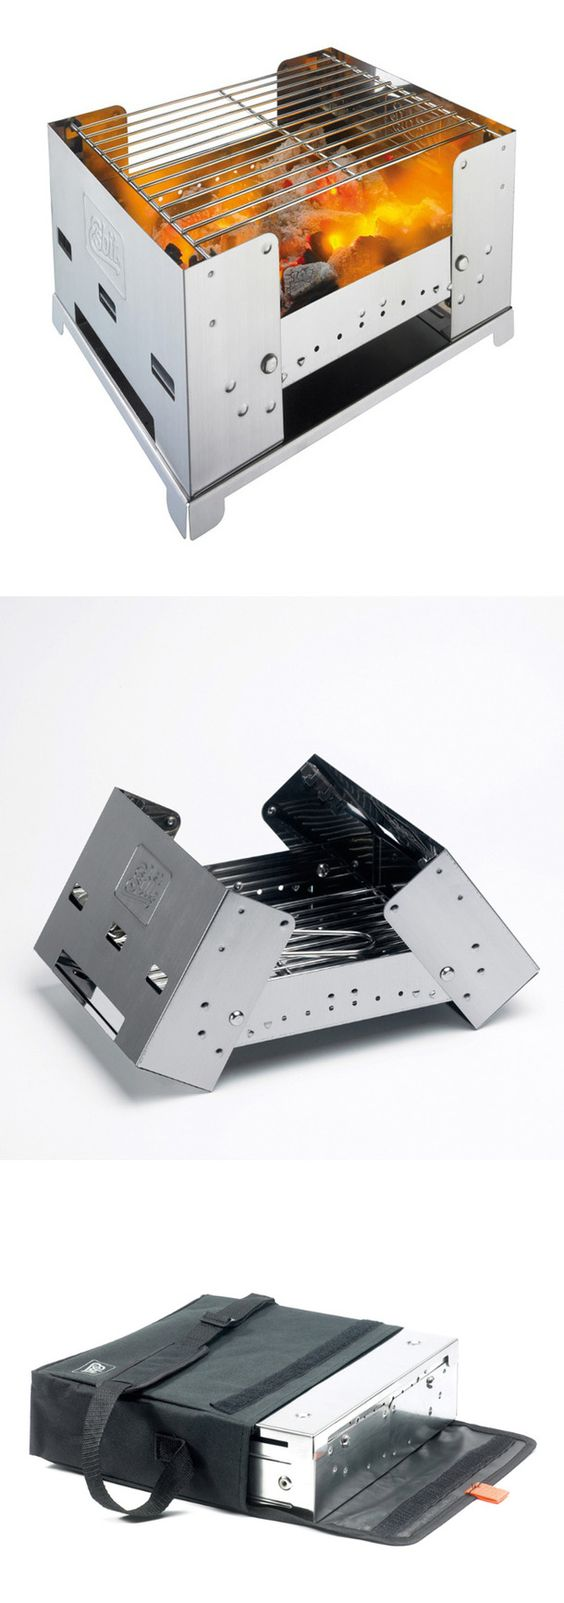 Portable charcoal grill | http://fab.com/sale/23130/product/421477/?ref=sale=23=hardpin_type56=Pinterest_Hardpin=on